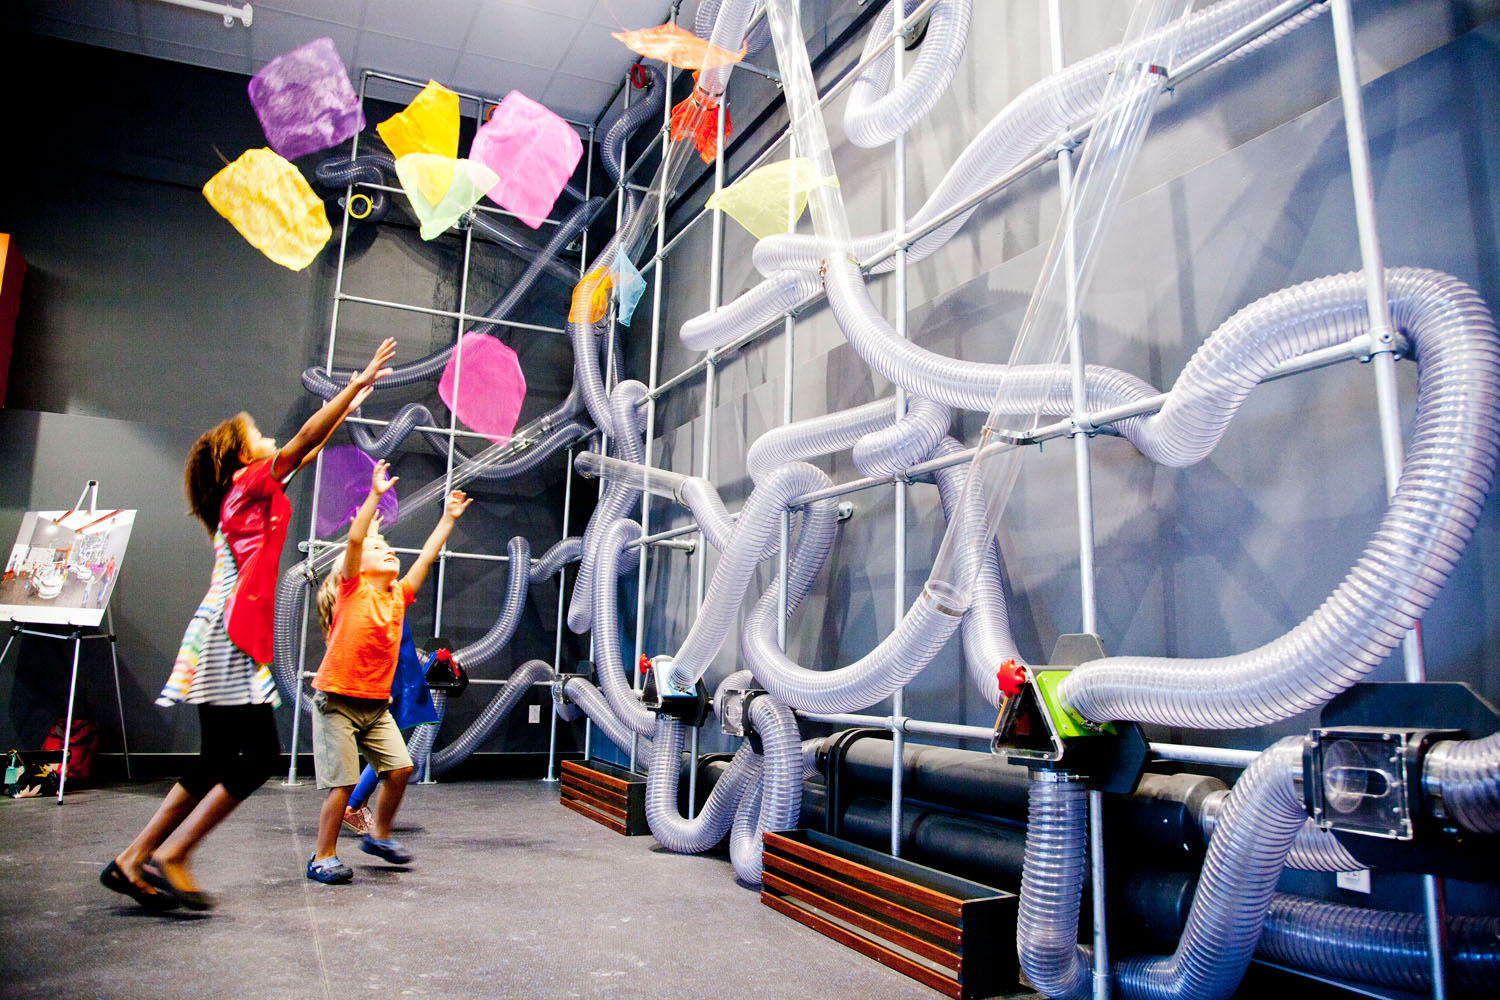 Children_Fascinated_by_Scarf_Air_Maze_at_the_Wonder_Lab_in_Childrens_Museum_of_Cleveland.jpg